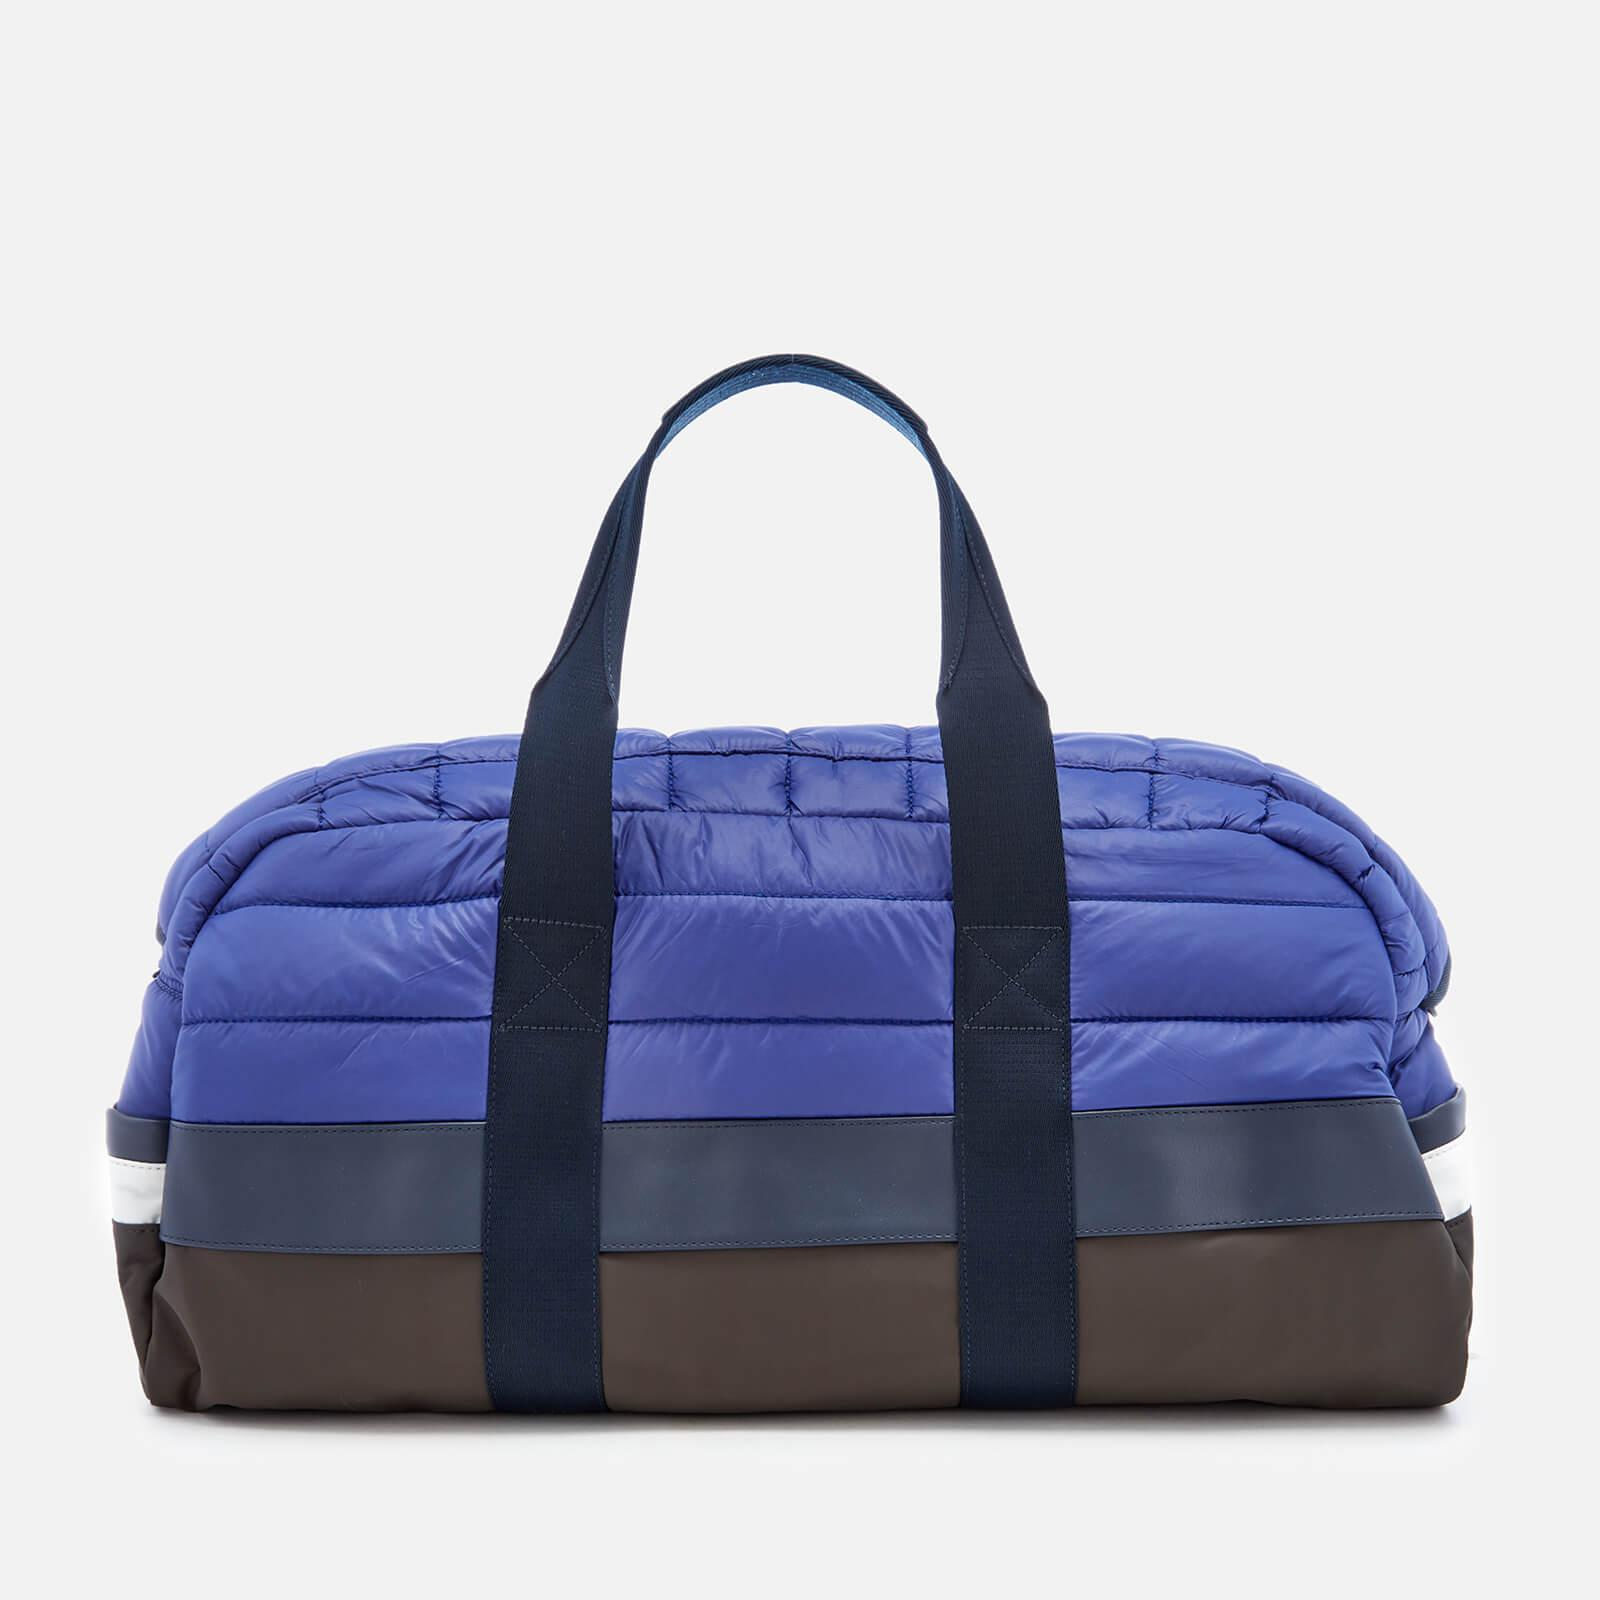 c93fa5dd0d Tommy Hilfiger City Trek Duffle Bag in Blue for Men - Lyst